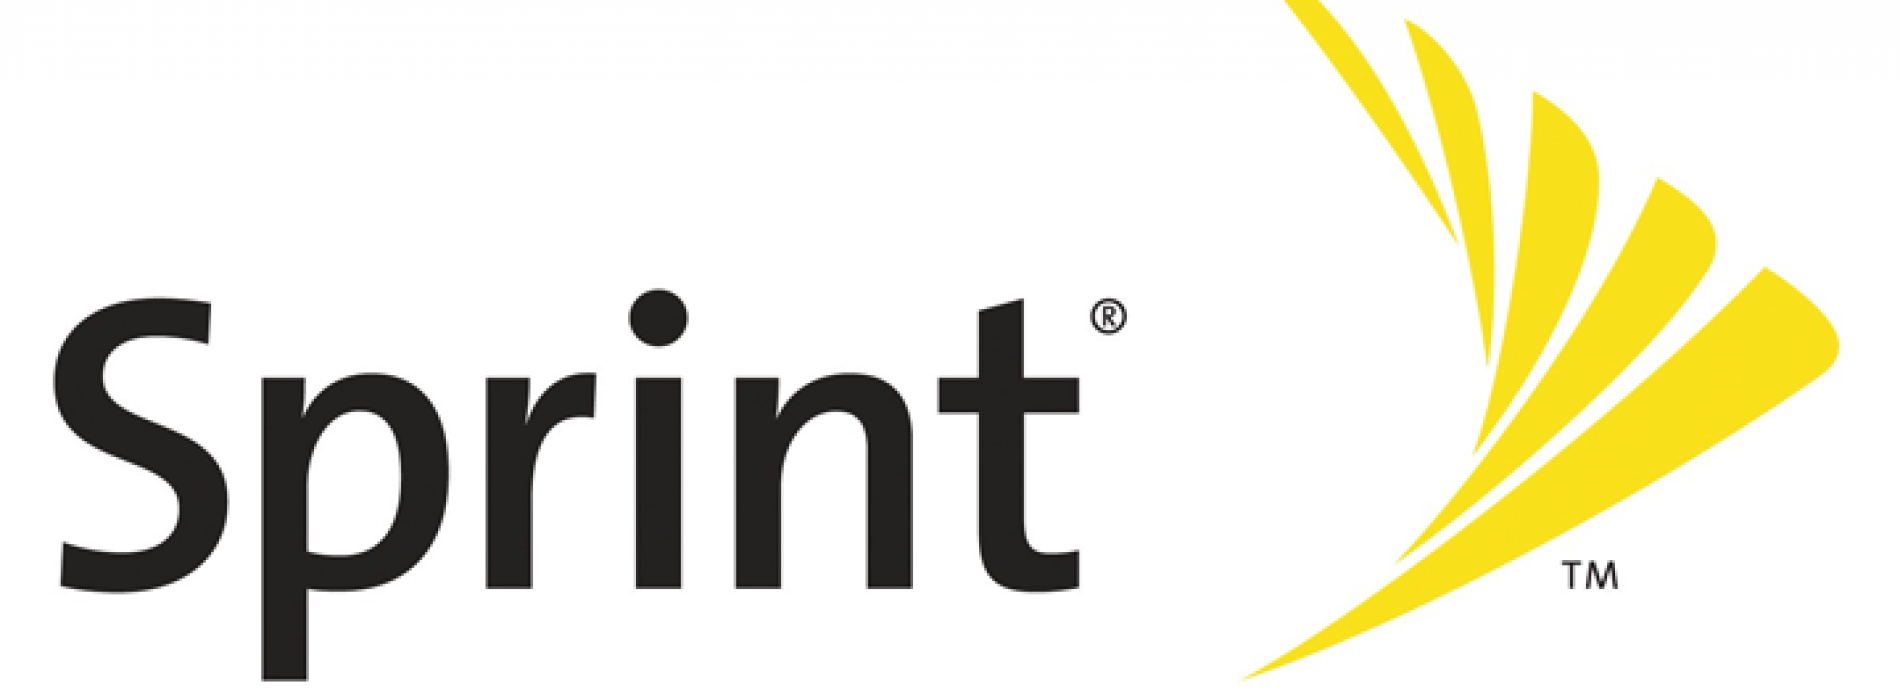 Sprint to become New Sprint in wake of SoftBank transaction